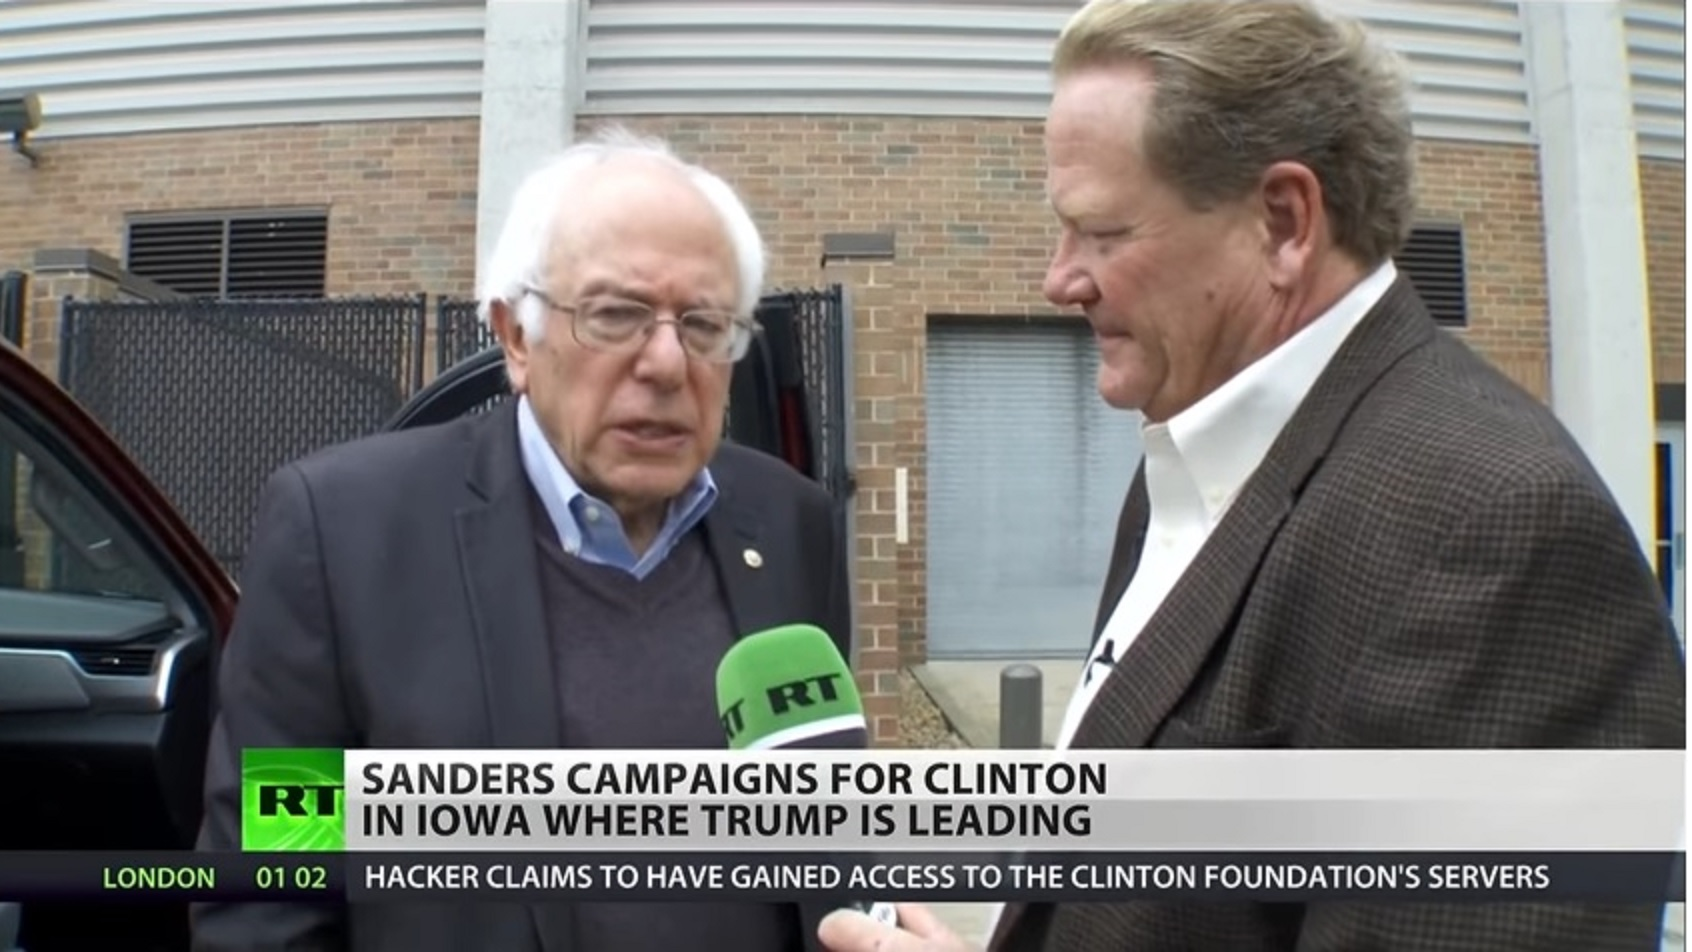 RT Interviews Sanders Campaigning for Hillary